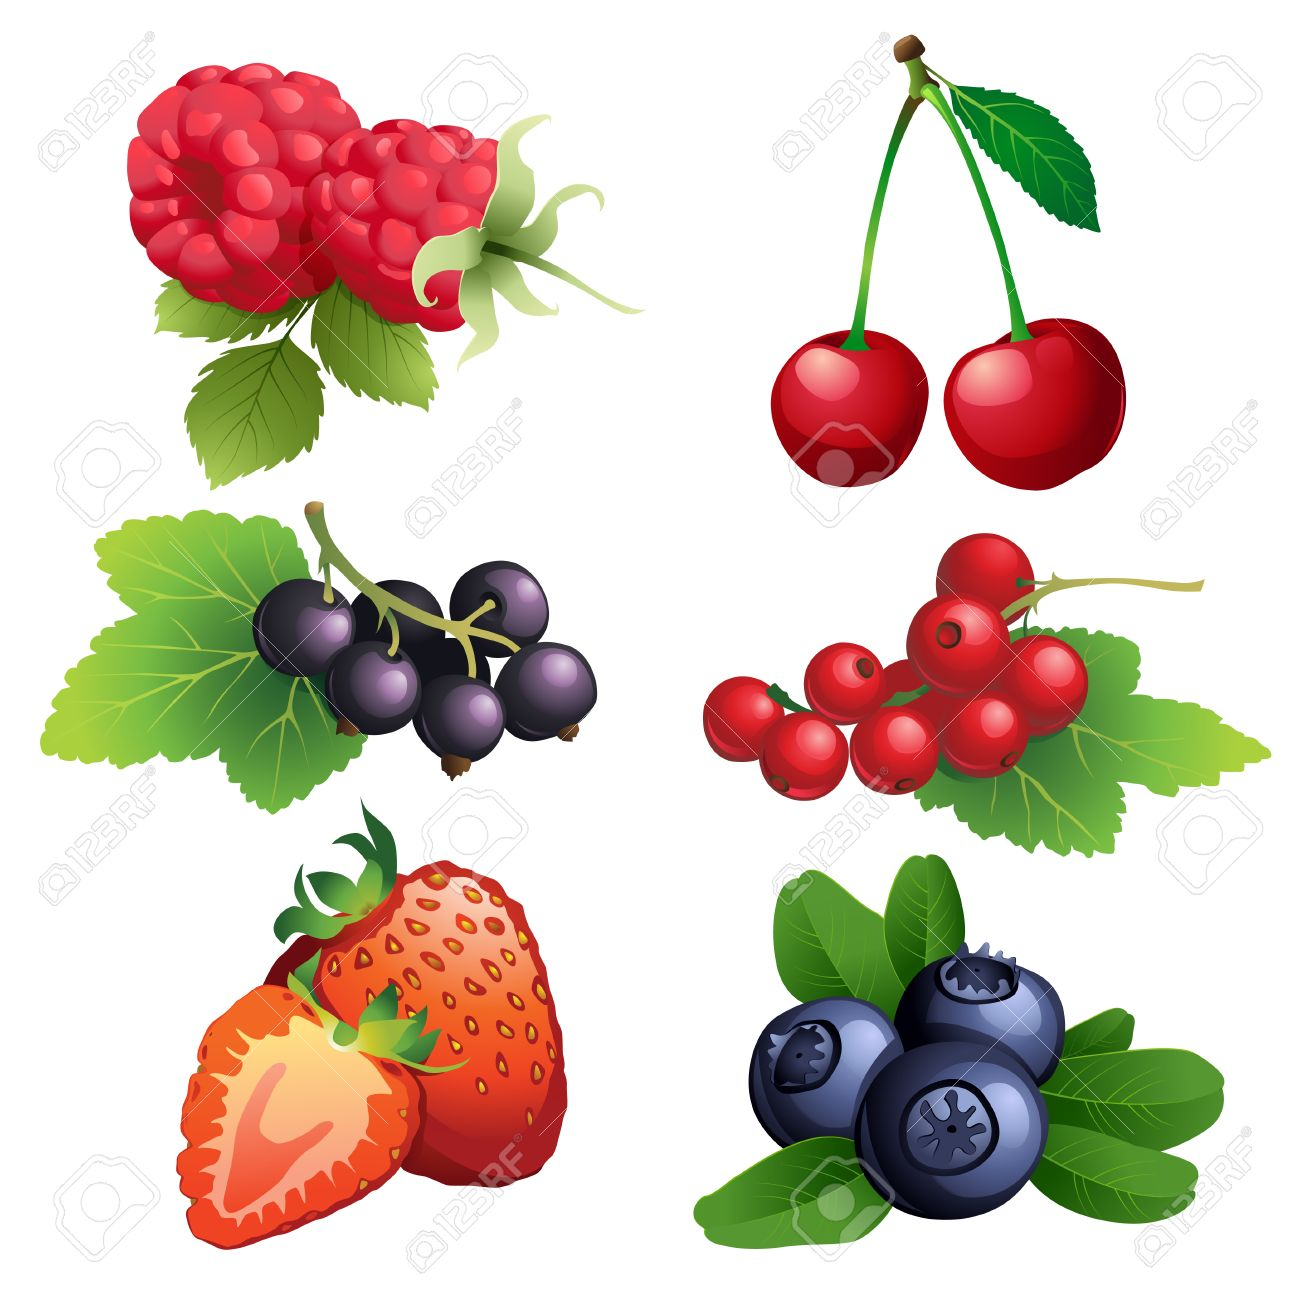 Vector Illustration Icon Of Ripe Strawberry, Raspberry, Cherry.